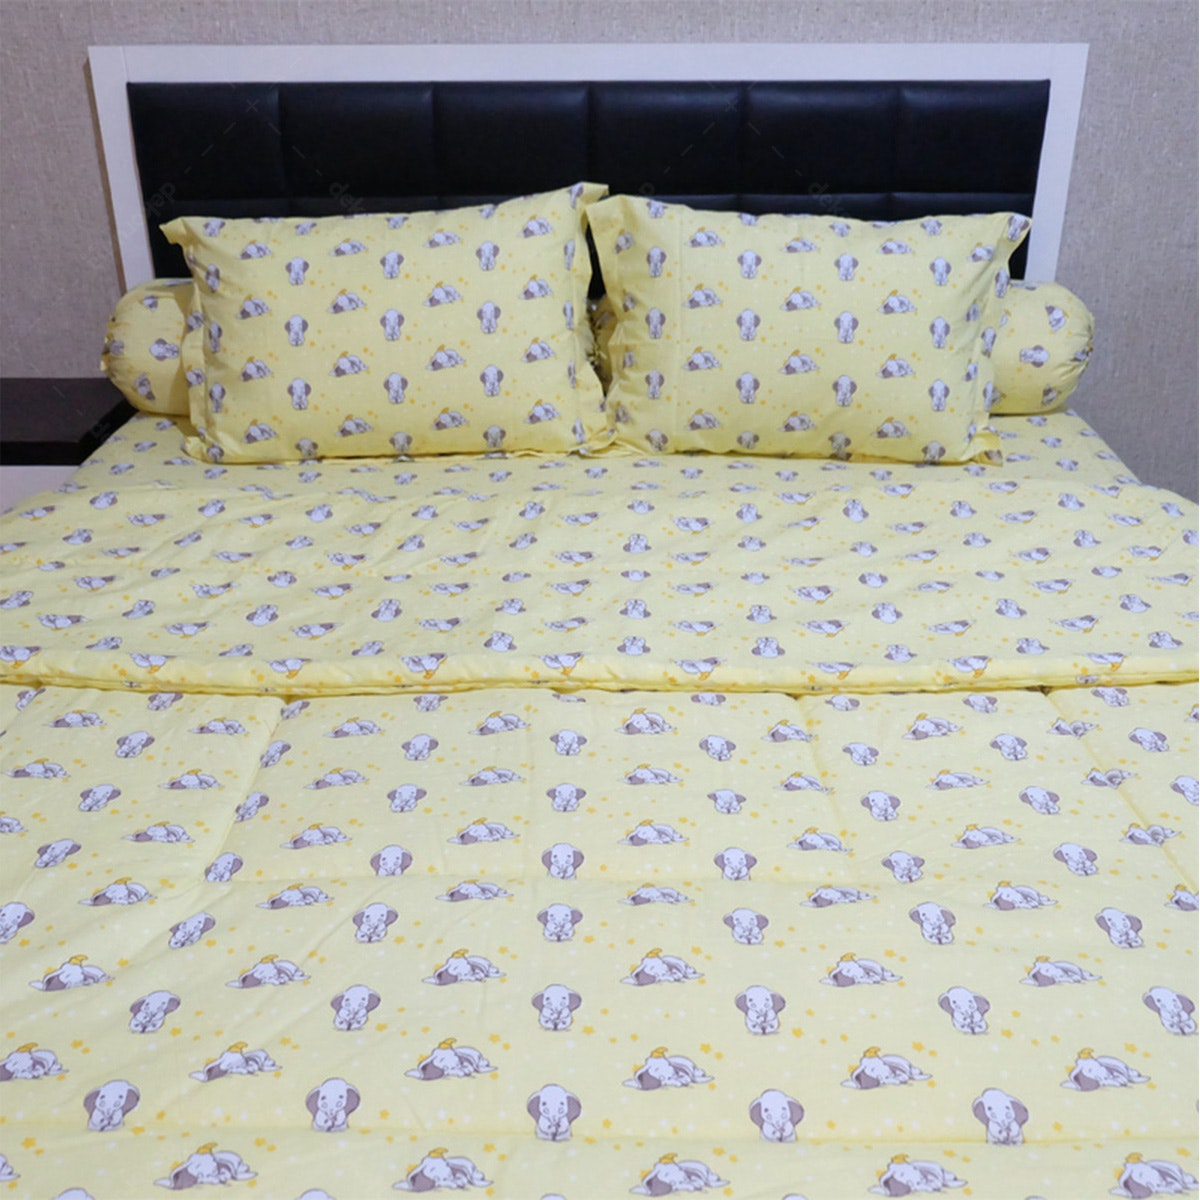 Sleep Buddy Set Sprei Dan Bed Cover Sleepy Dumbo Cvc 120x200x30